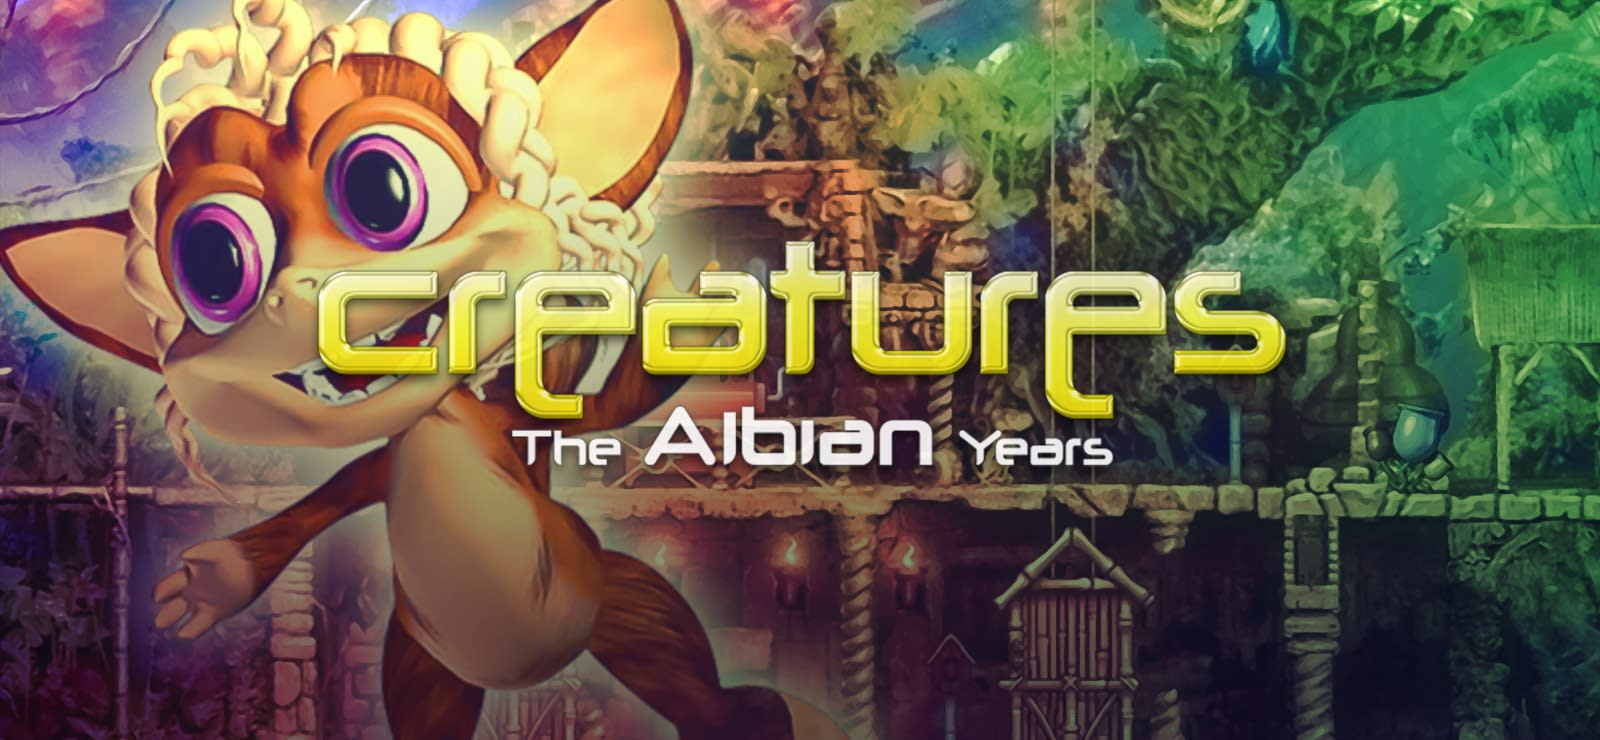 Creatures: The Albian Years varies-with-device